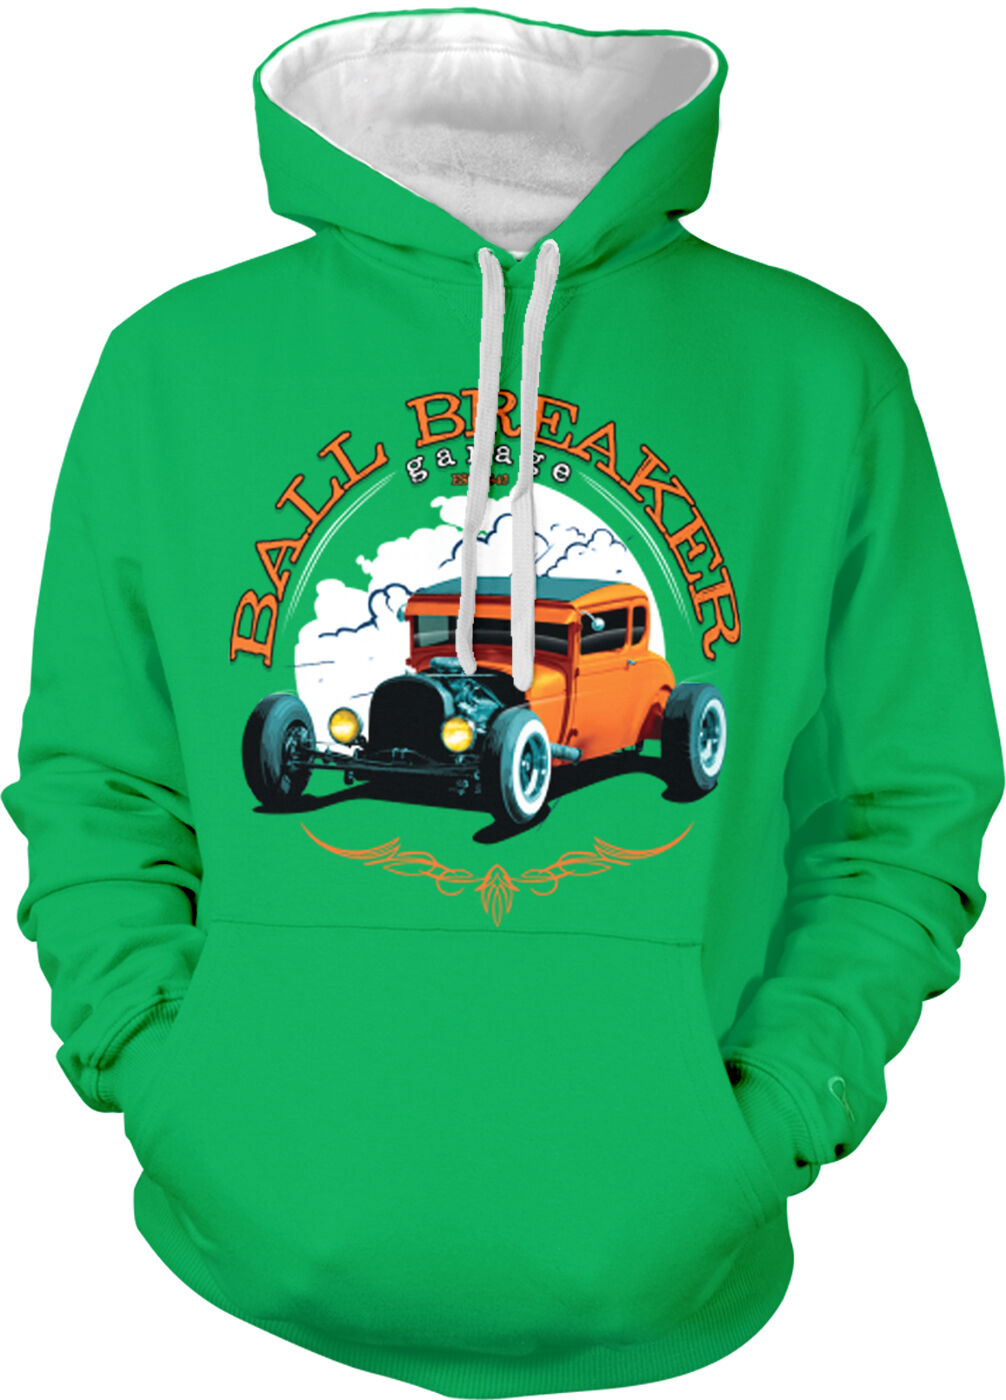 Ball Breaker Garage Hot Rod Classic Car Vintage Old Two Tone Hoodie Sweatshirt